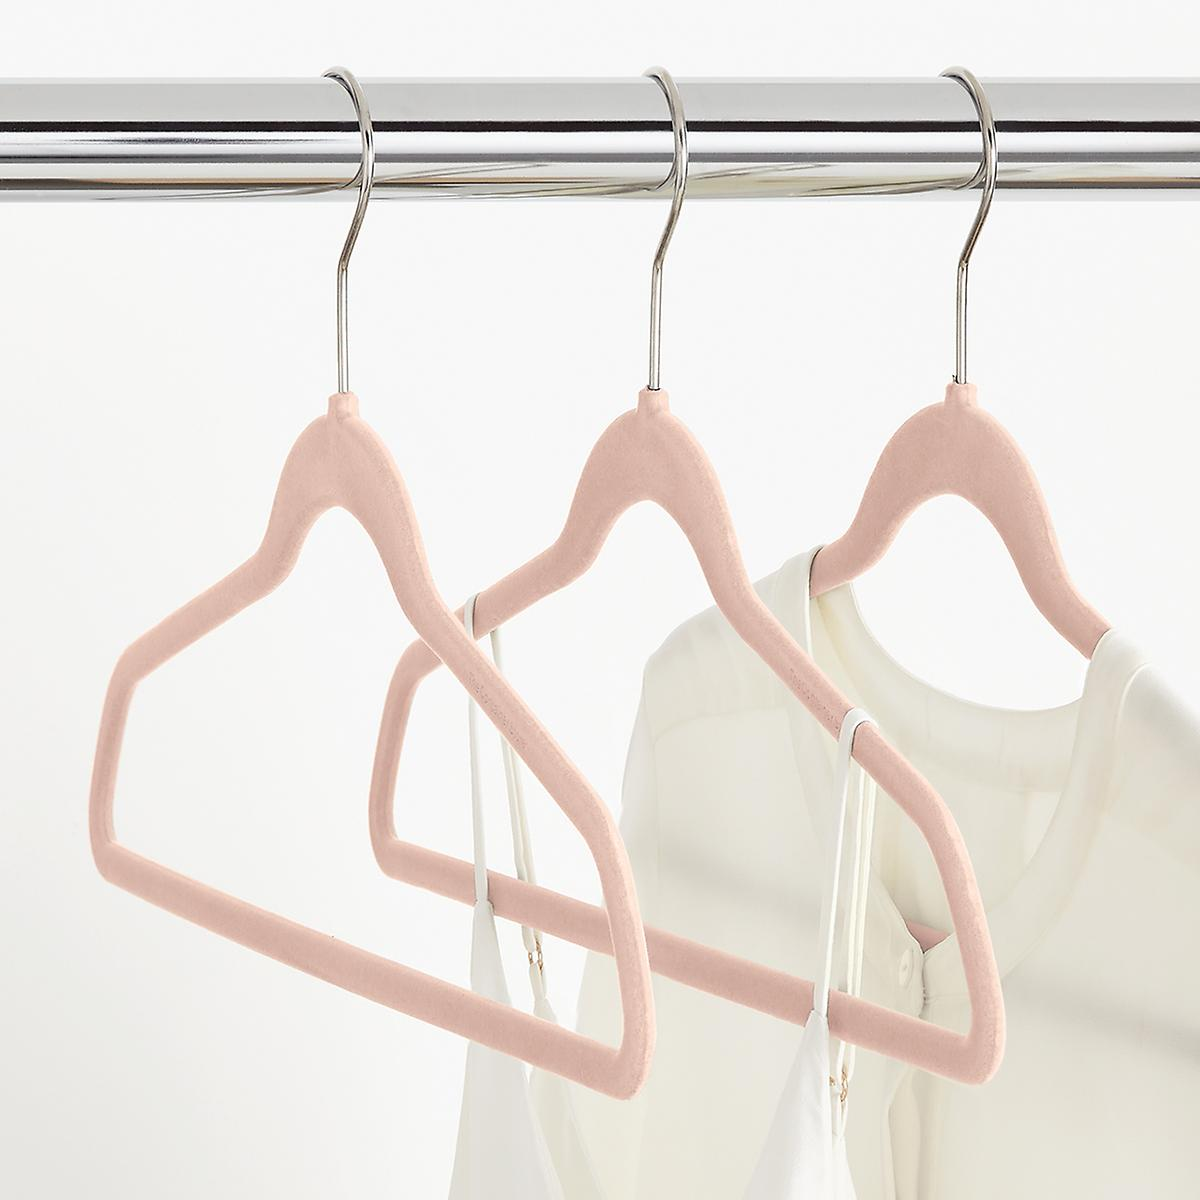 Blush Premium Non-Slip Velvet Suit Hangers Case of 40